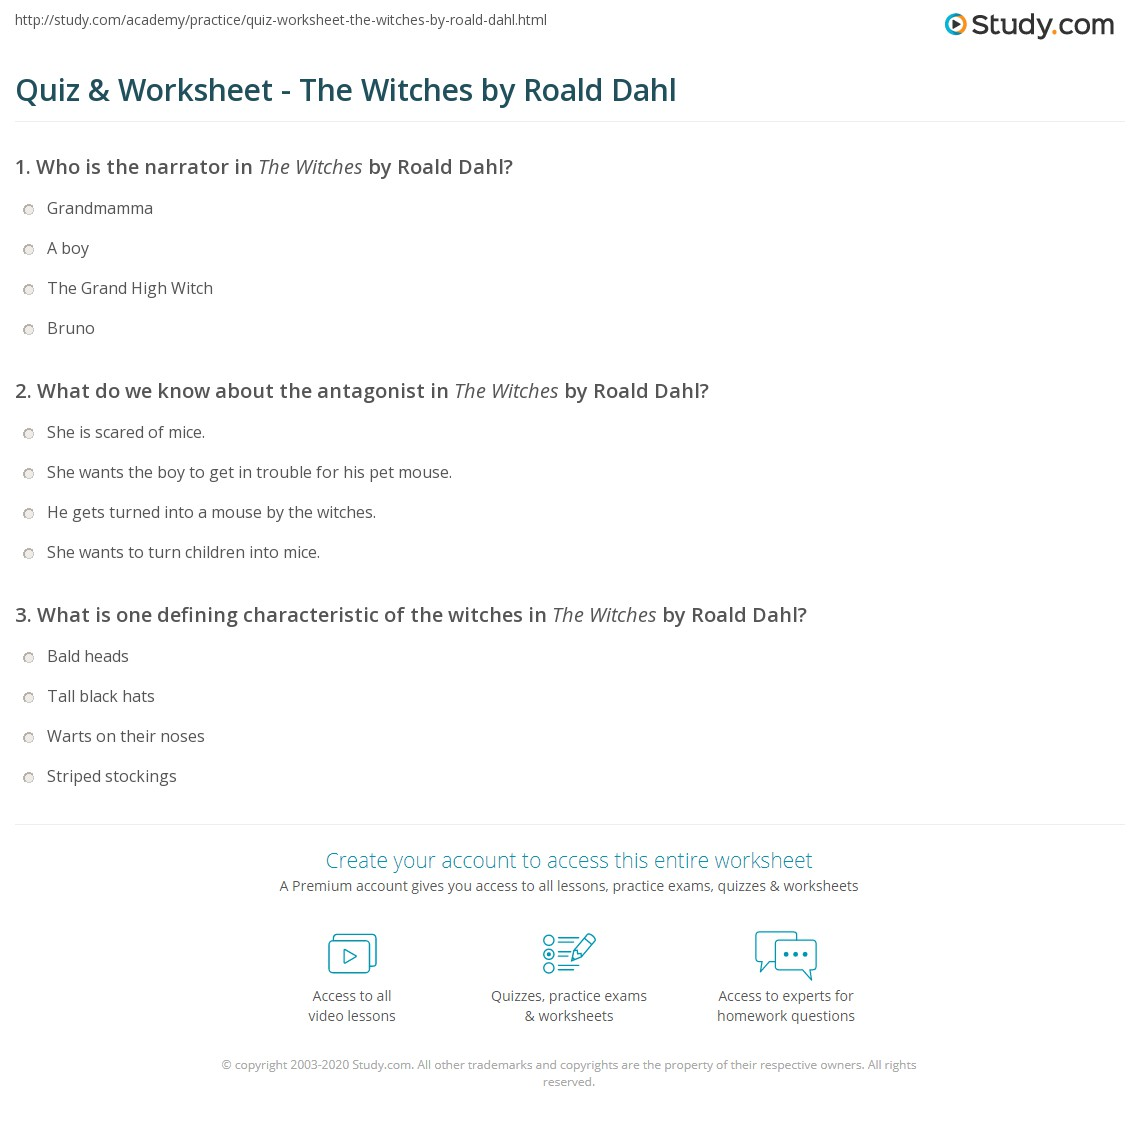 Quiz & Worksheet - The Witches by Roald Dahl | Study.com